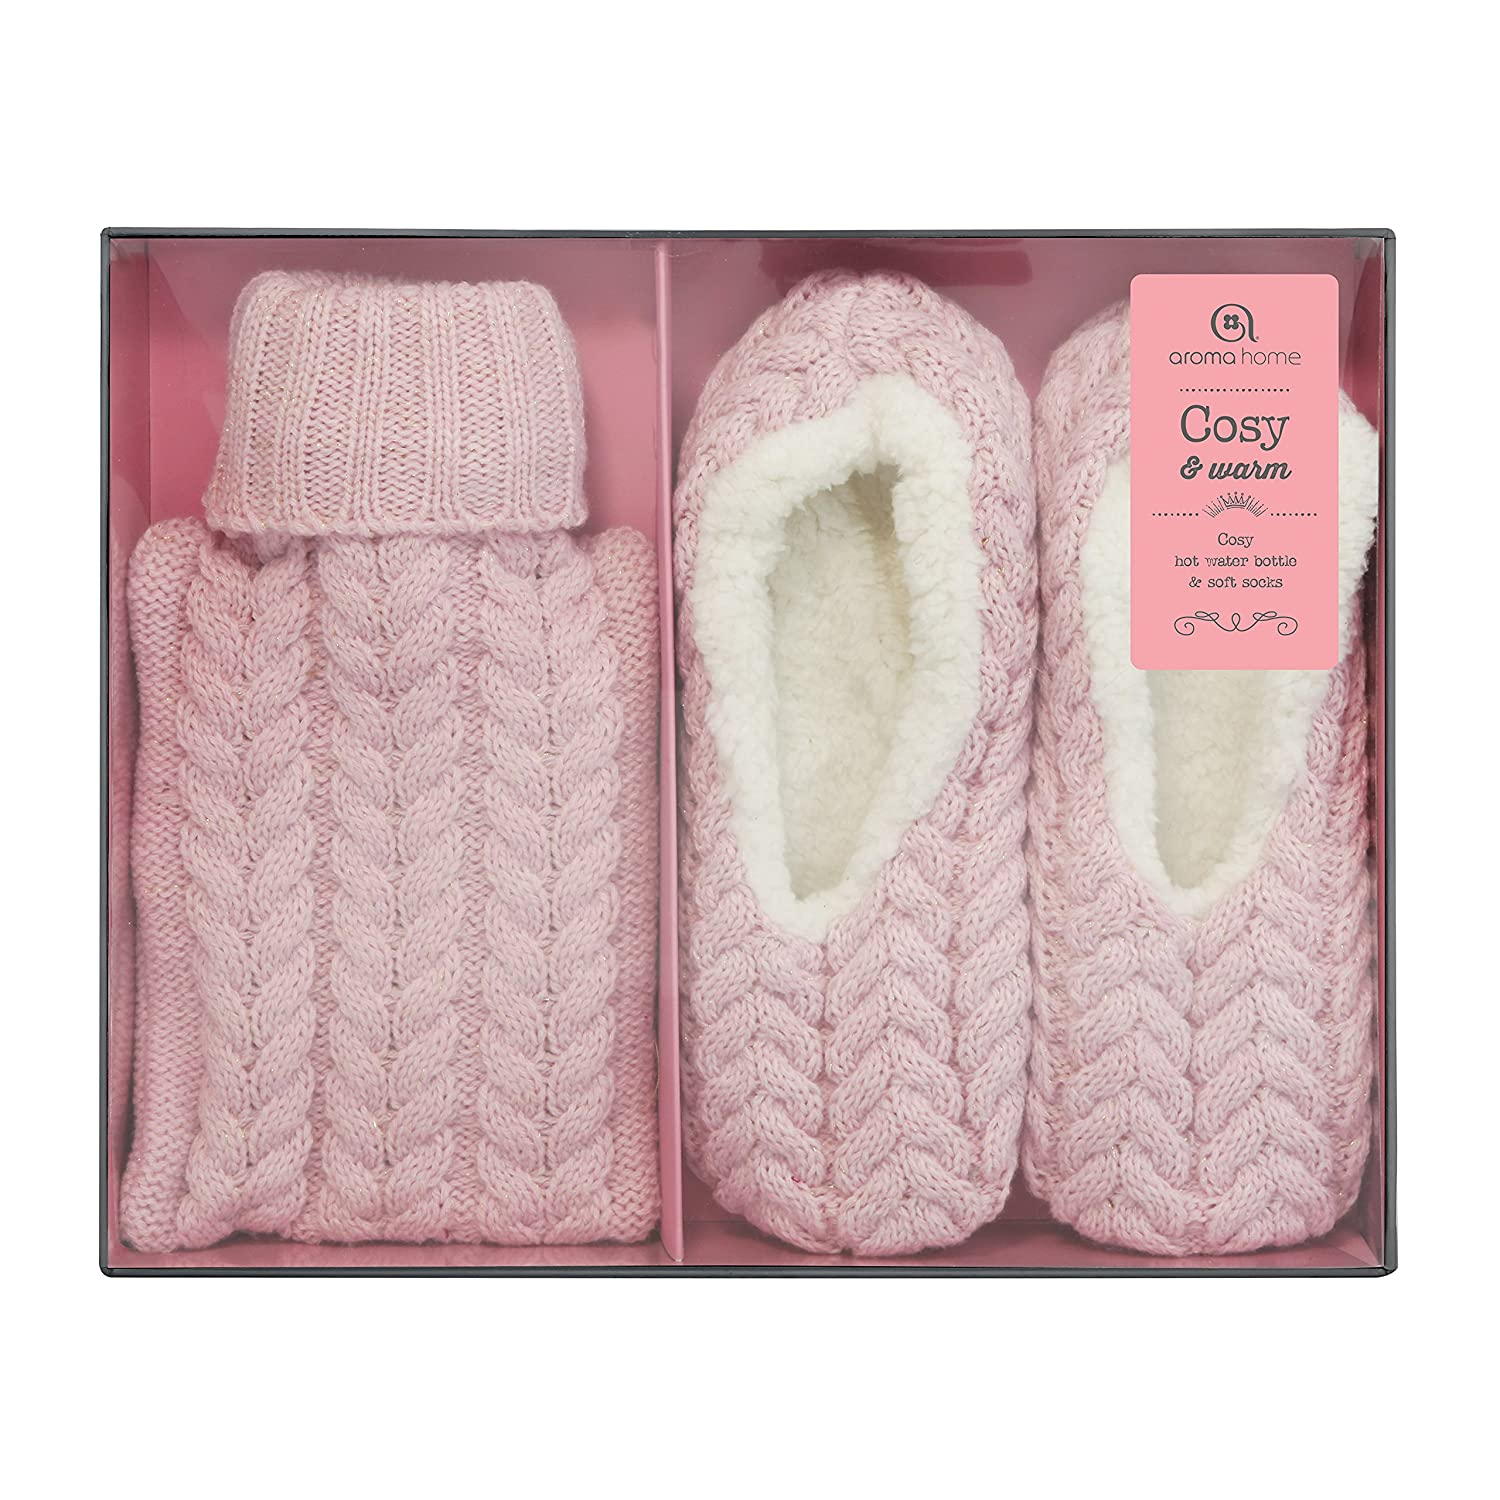 2d88d609edb1 Details about Aroma Home 01 Mini Hot Water Bottle   Cosy Slippers - SLIPPK